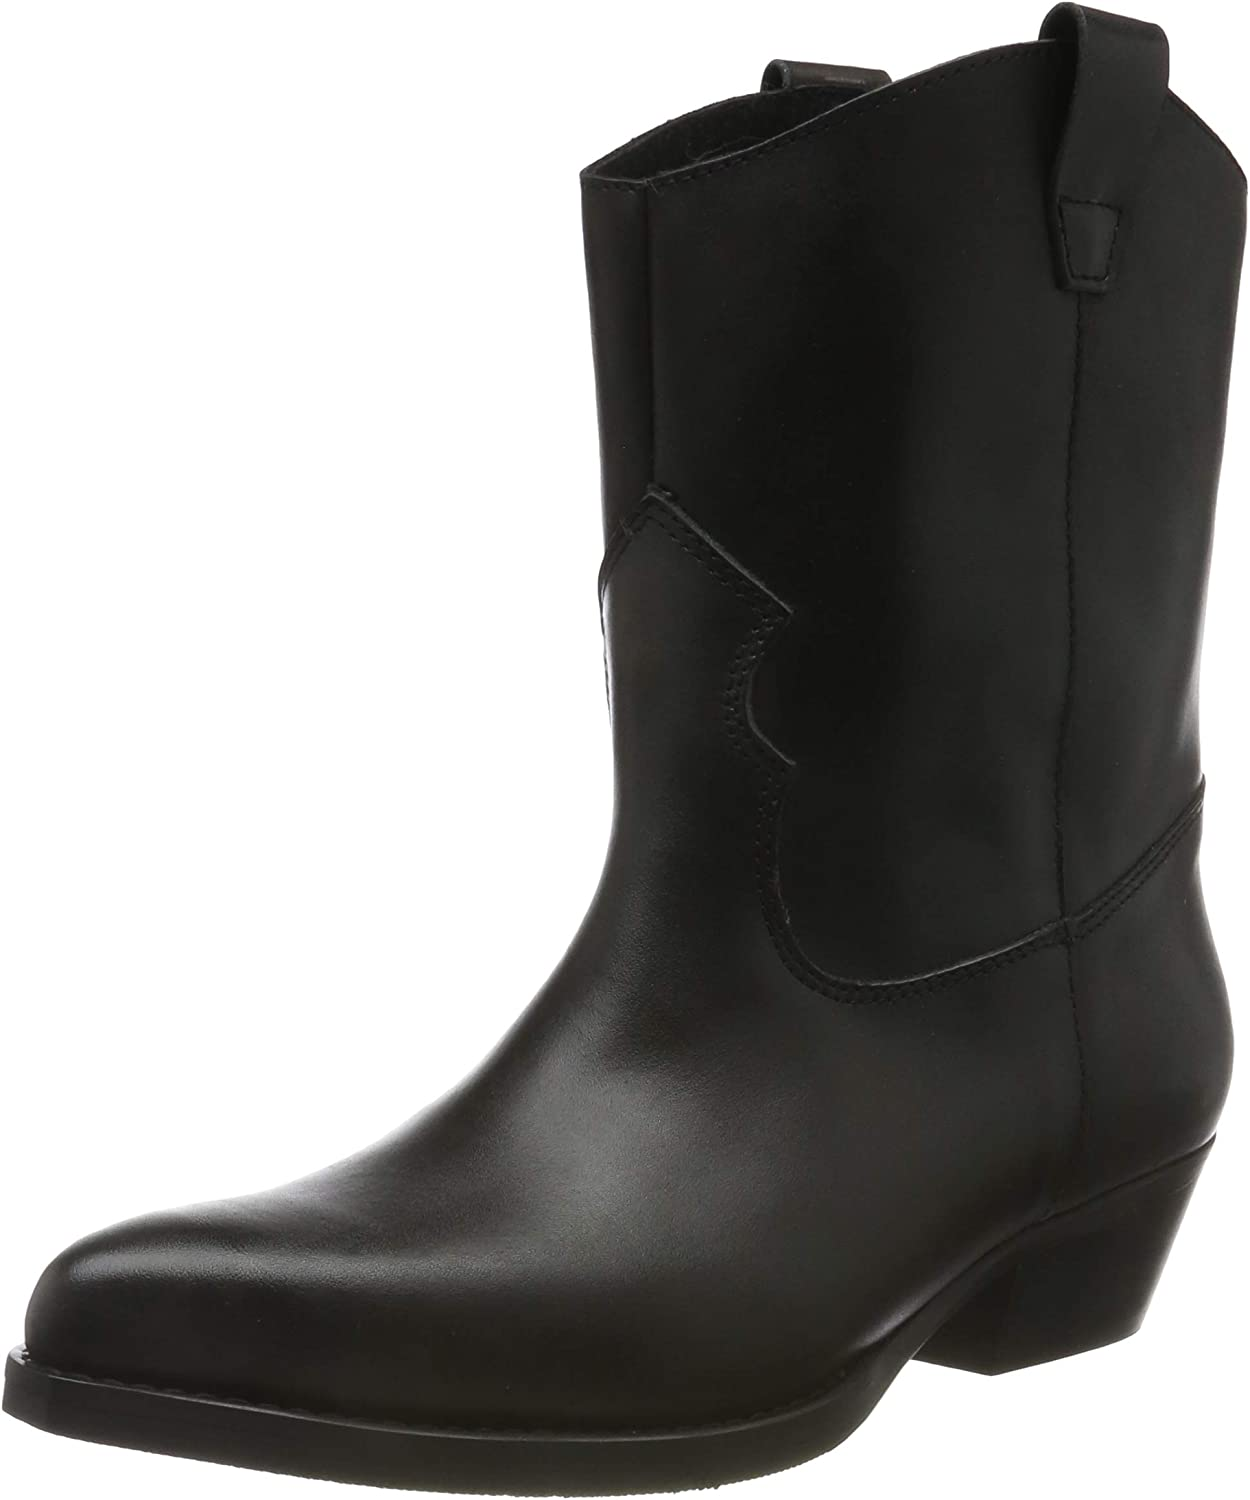 PIECES Psheart Leather Boot, Botas Camperas para Mujer